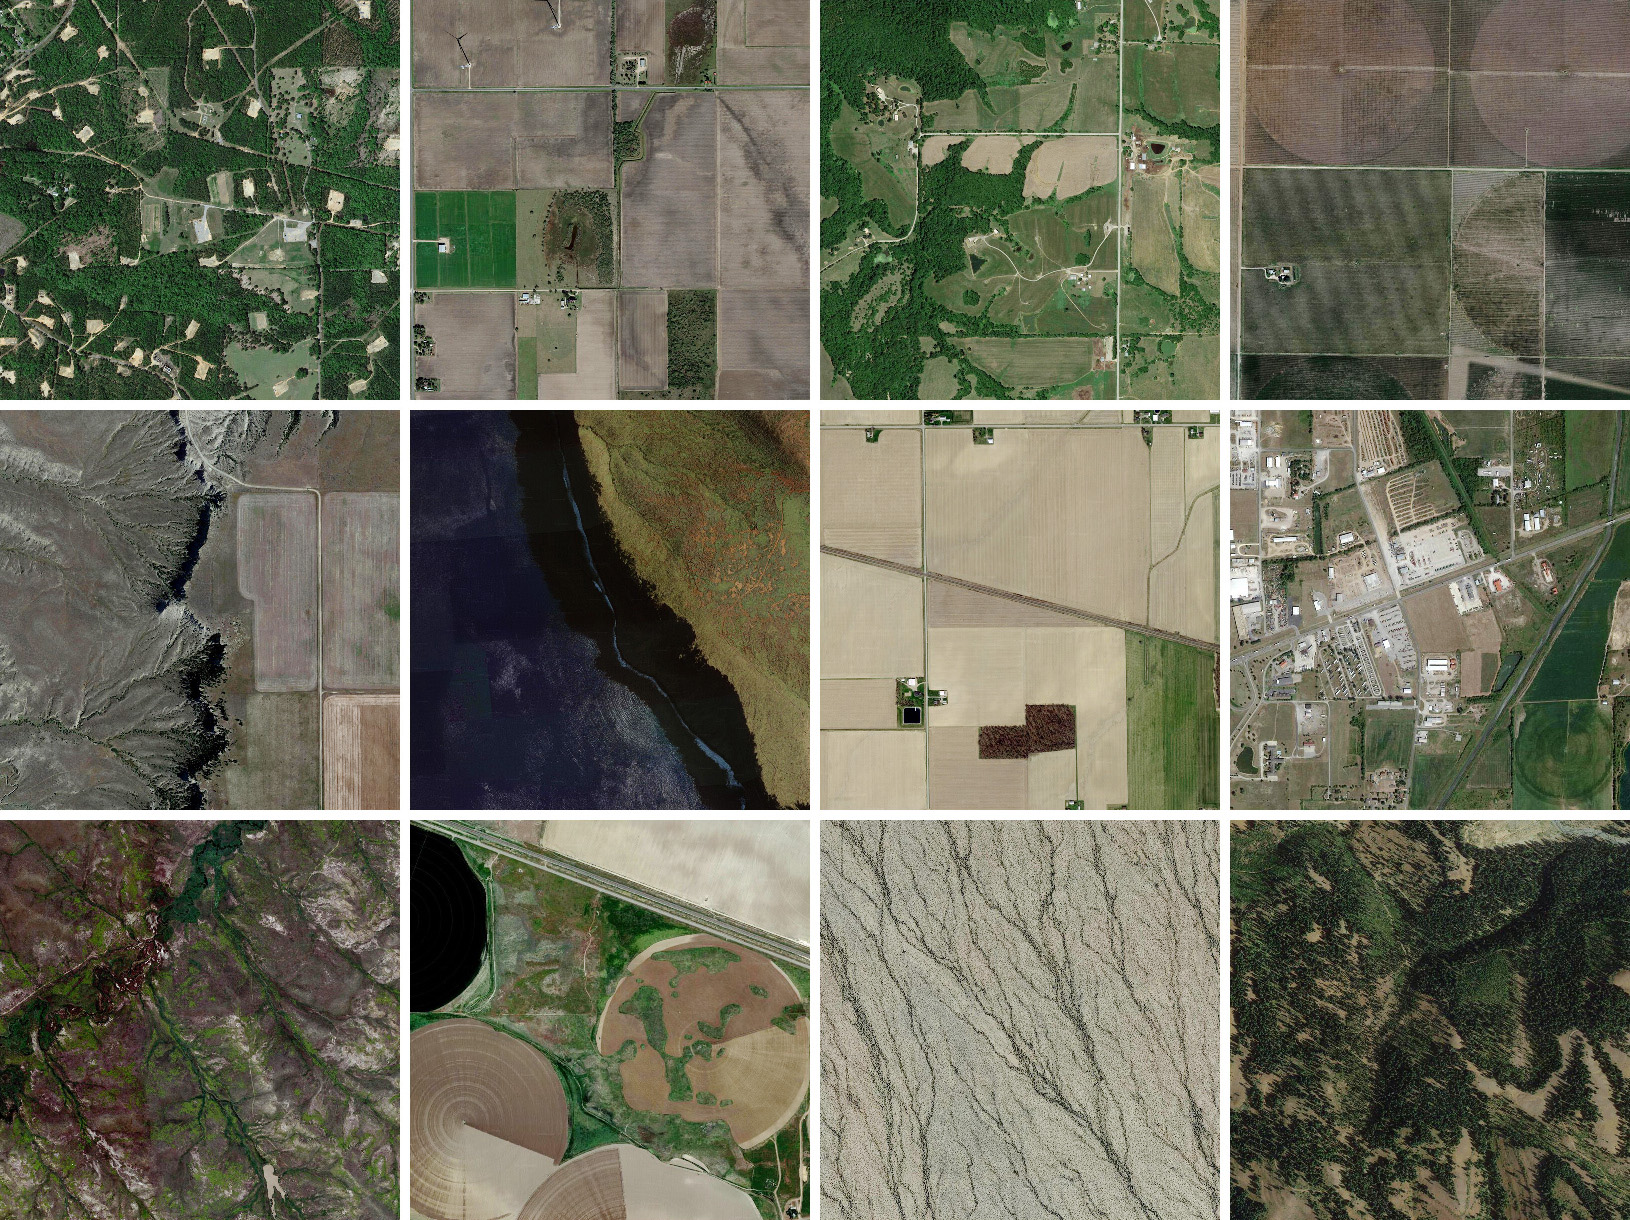 One square mile each, somewhere in the United Sates, centered around (from top left to bottom right): 31.056747601478456,-89.61225567756193; 26.44943037843055,-97.69999657039938; 39.32223925968352,-95.06302508257909; 33.830621832157895,-102.7345327711916; 46.149781016546264,-108.95292330126662; 20.755048248172997,-156.98230879693344; 41.21859102806858,-83.97344375576749; 36.89466223259036,-89.52366337871948; 36.07100491499848,-115.26963797305373; 42.87888803844798,-113.90920385179305; 33.90737575723908,-113.46512478011427; 45.009510867796266, -117.01147828430616